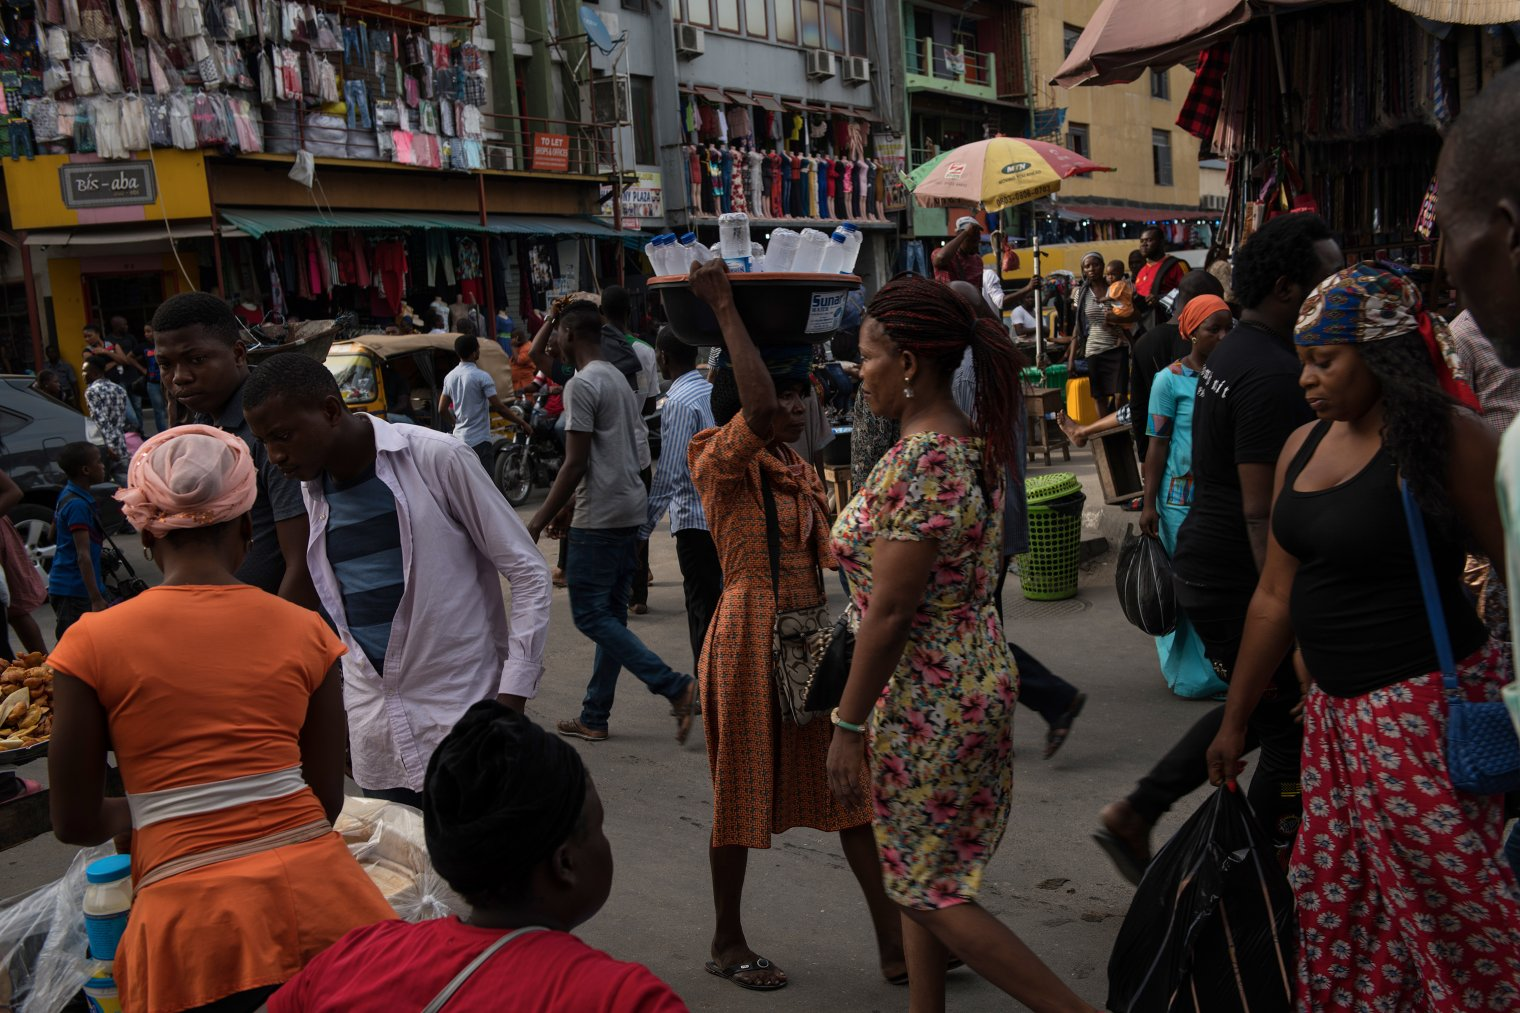 Nigerians walk through the market in Lagos, Nigeria, March 20, 2018